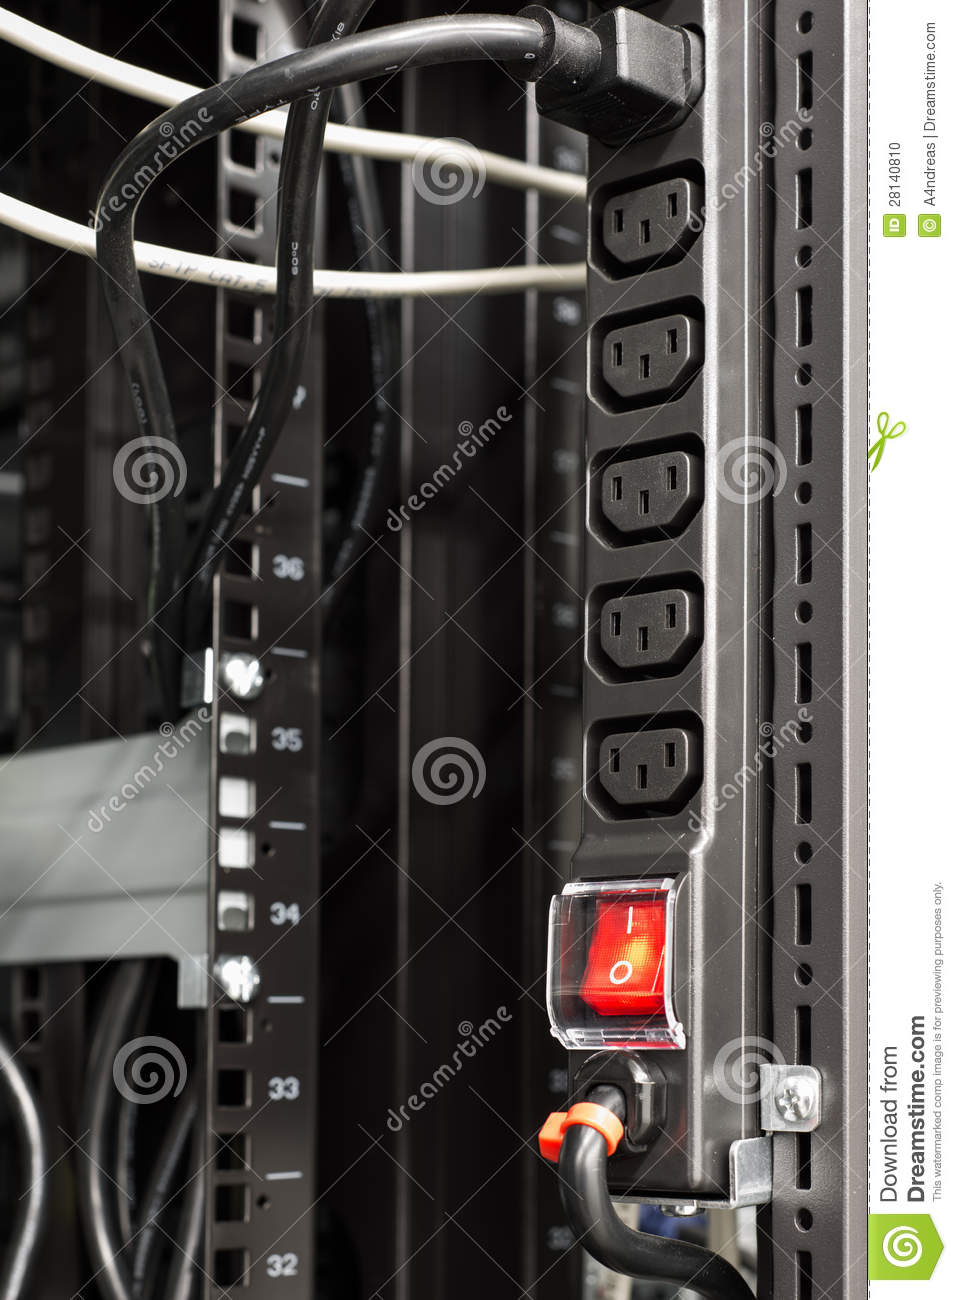 Black Power Bar In Server Rack Stock Photo Image 28140810